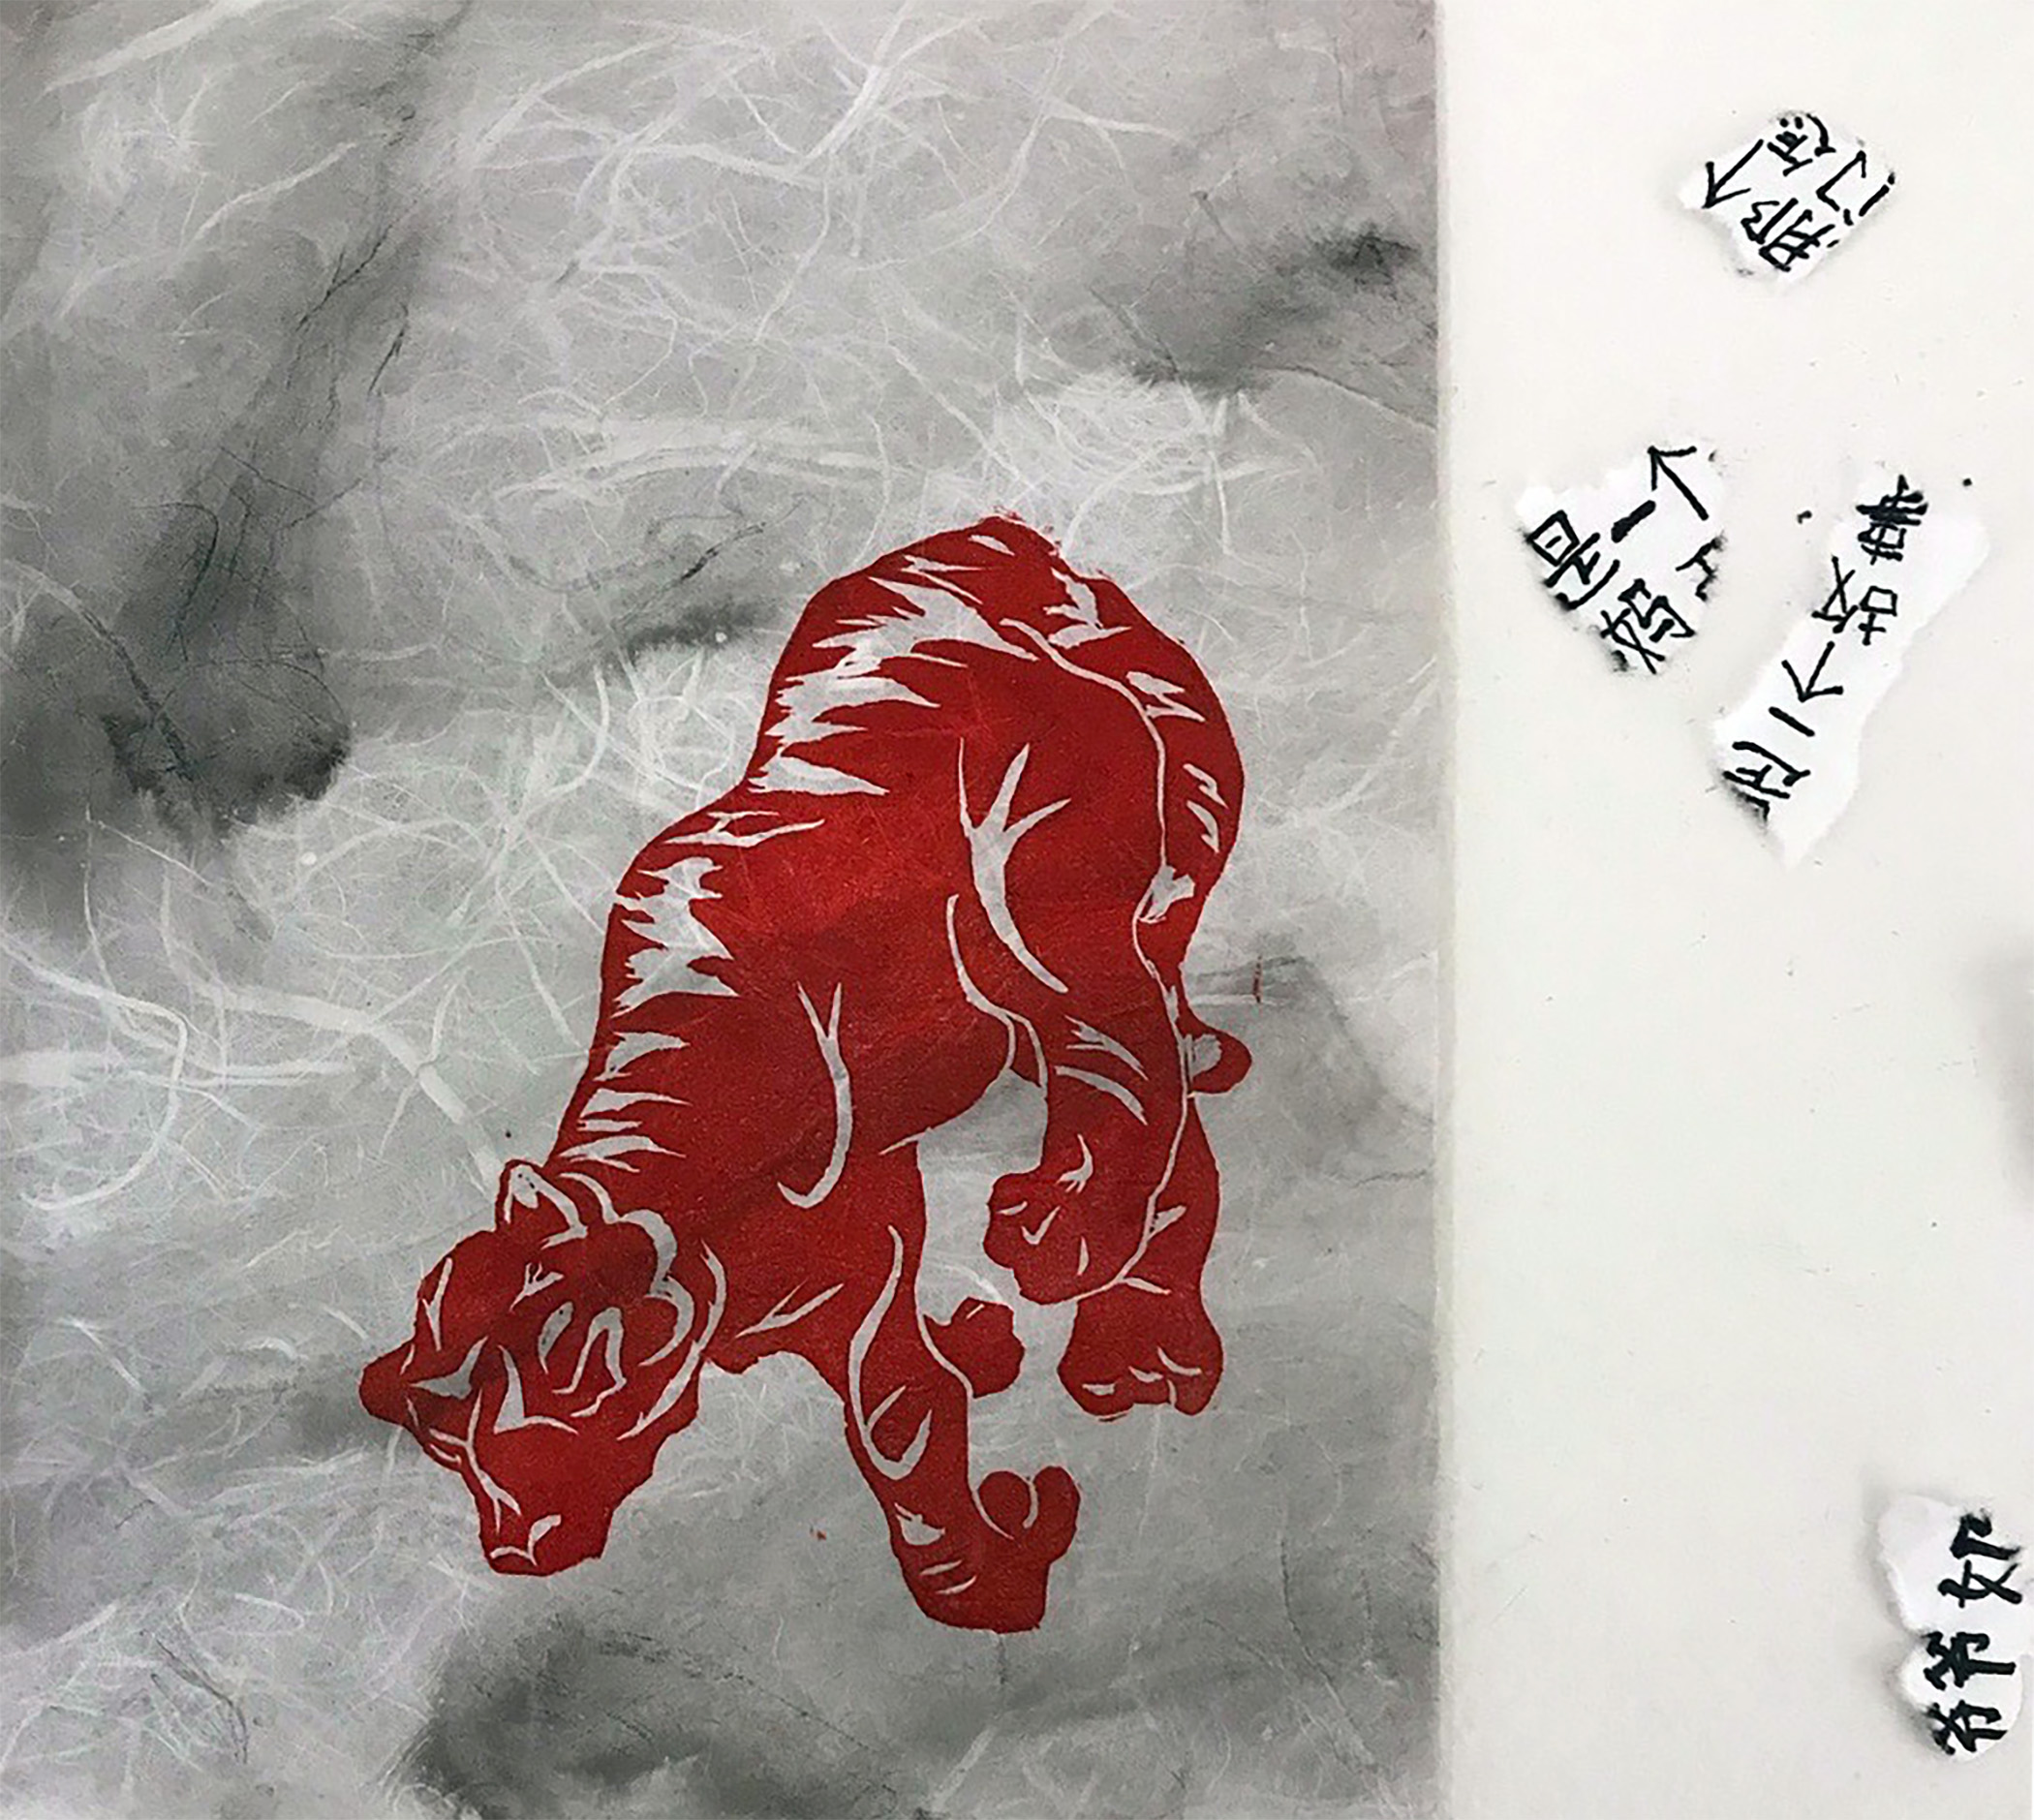 - As the reader moves through the book, less and less Chinese appears on the page, and near the back of the book, there are torn out characters, which are displayed around the book, emphasizing this loss in language and culture. Due to movement of the pages and viewer, the torn out characters around the book scatter further away from the book as well.